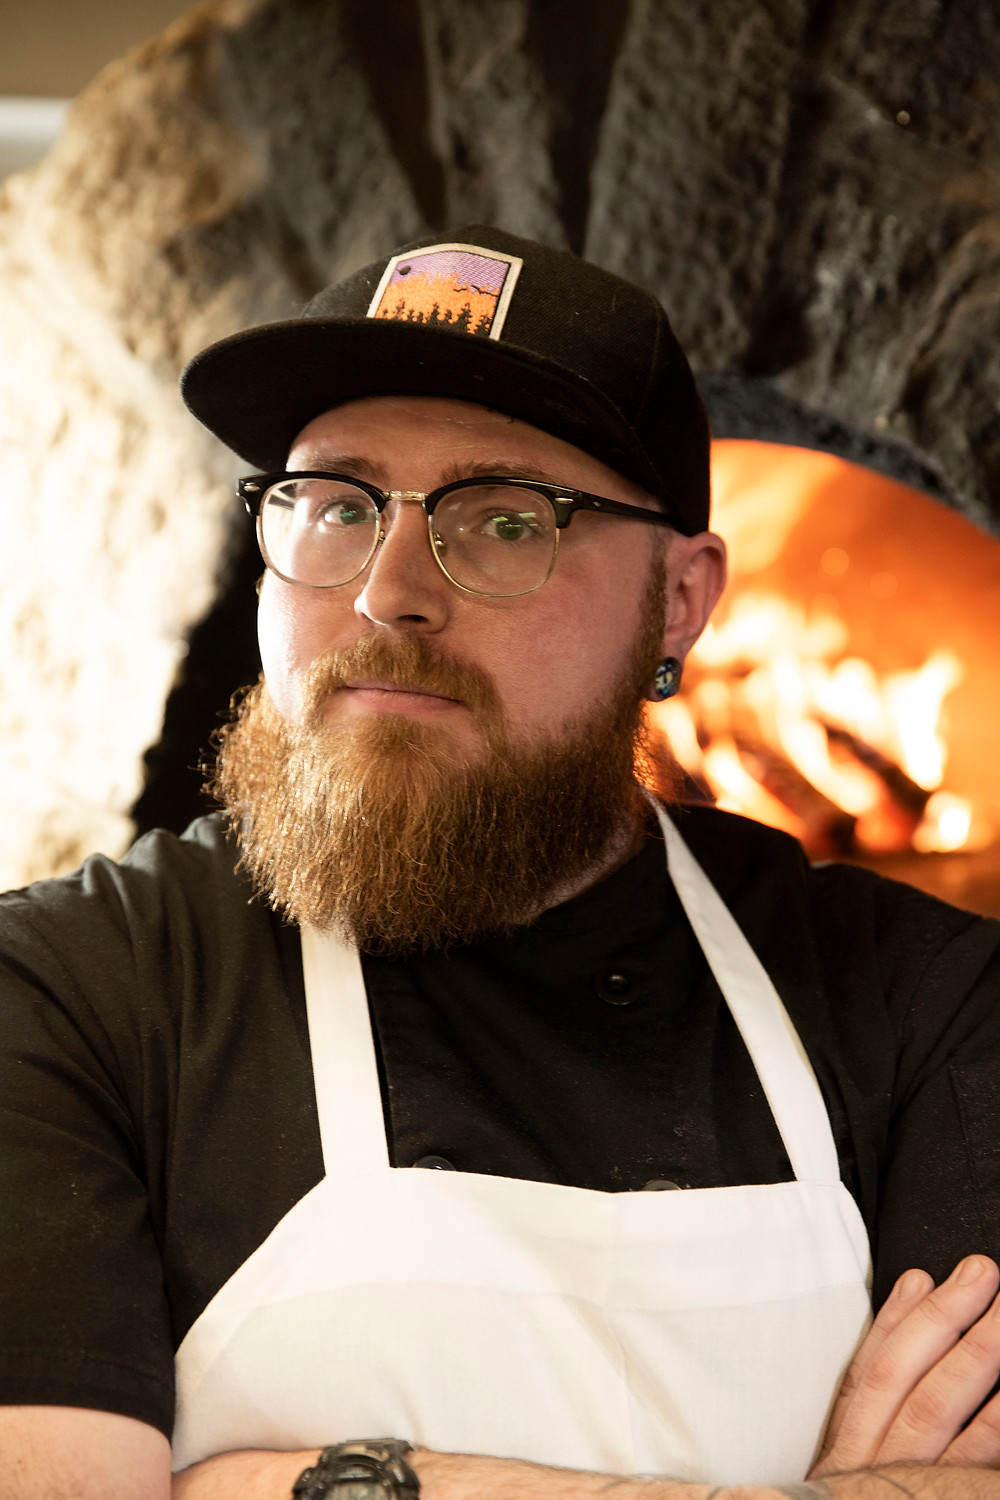 Man with beard and glasses stands cross armed and confident in front of his brick oven at The Old No. 102 Tap House